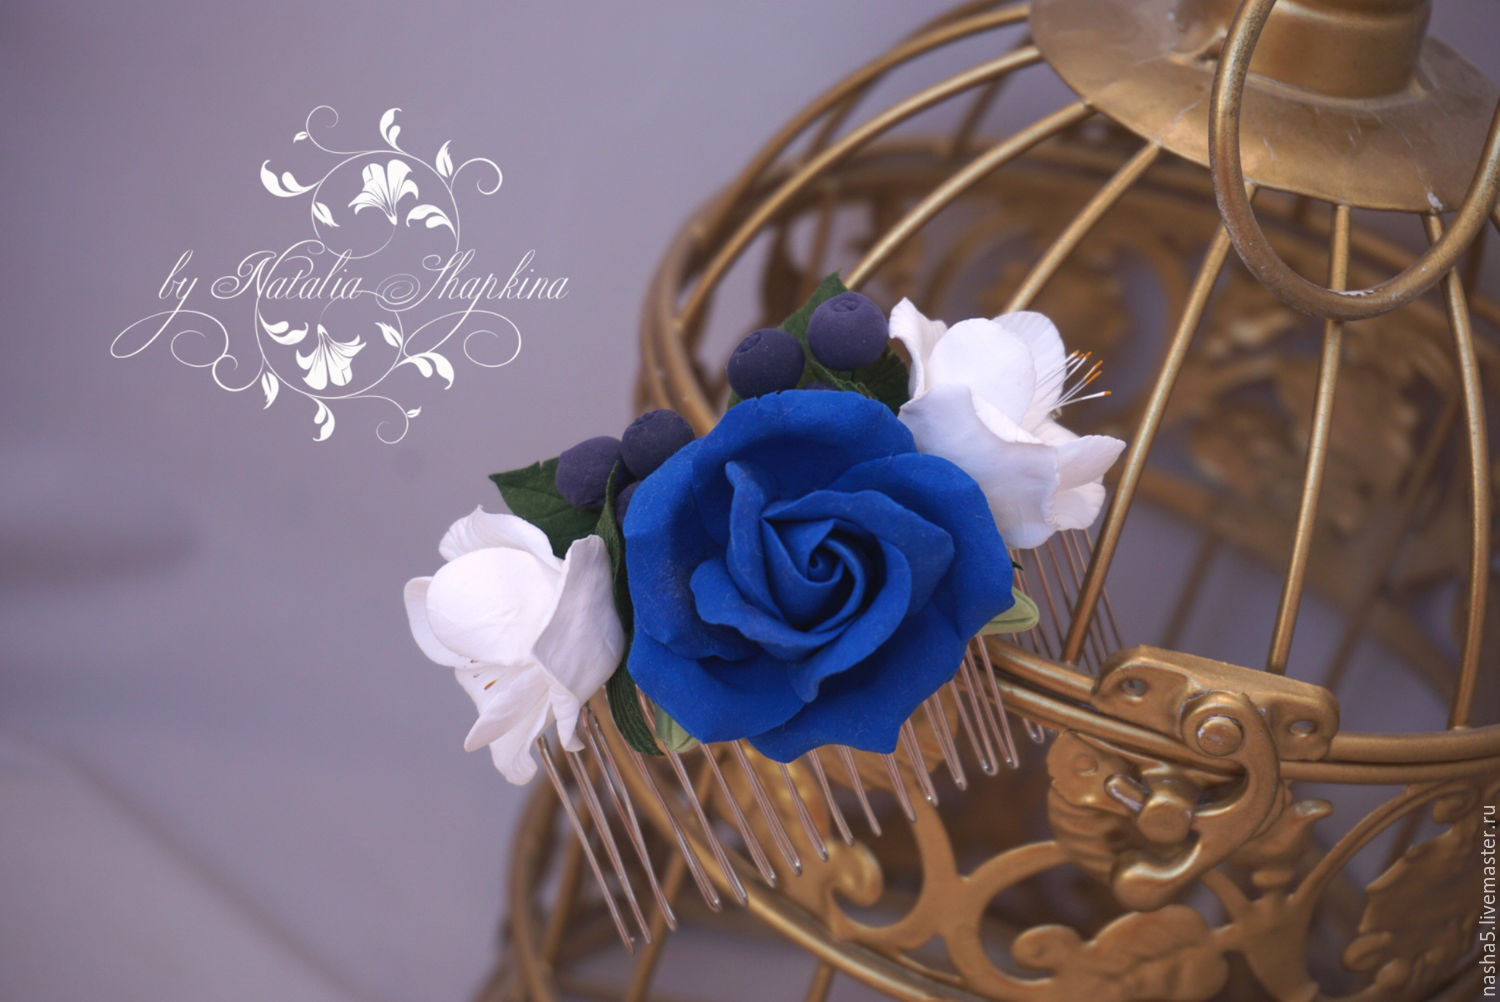 Comb with blue roses, freesias and blueberries